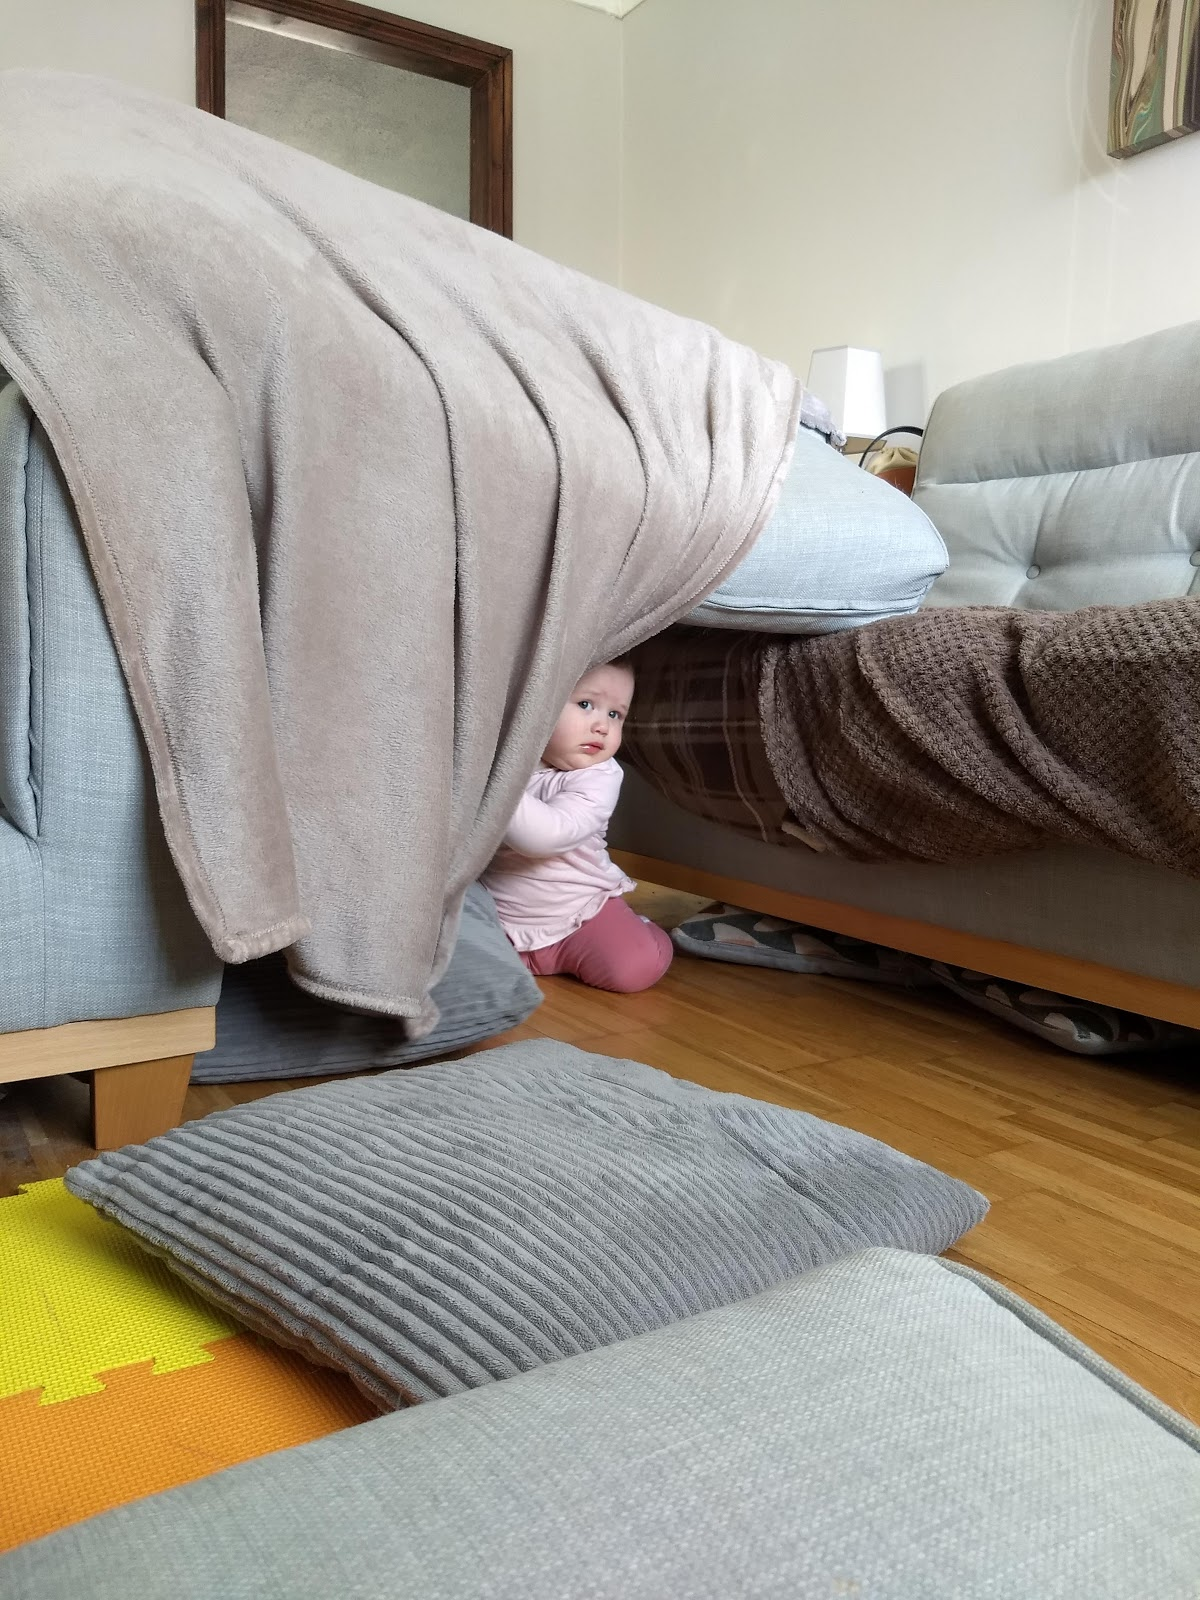 Toddler hiding under make shift den.